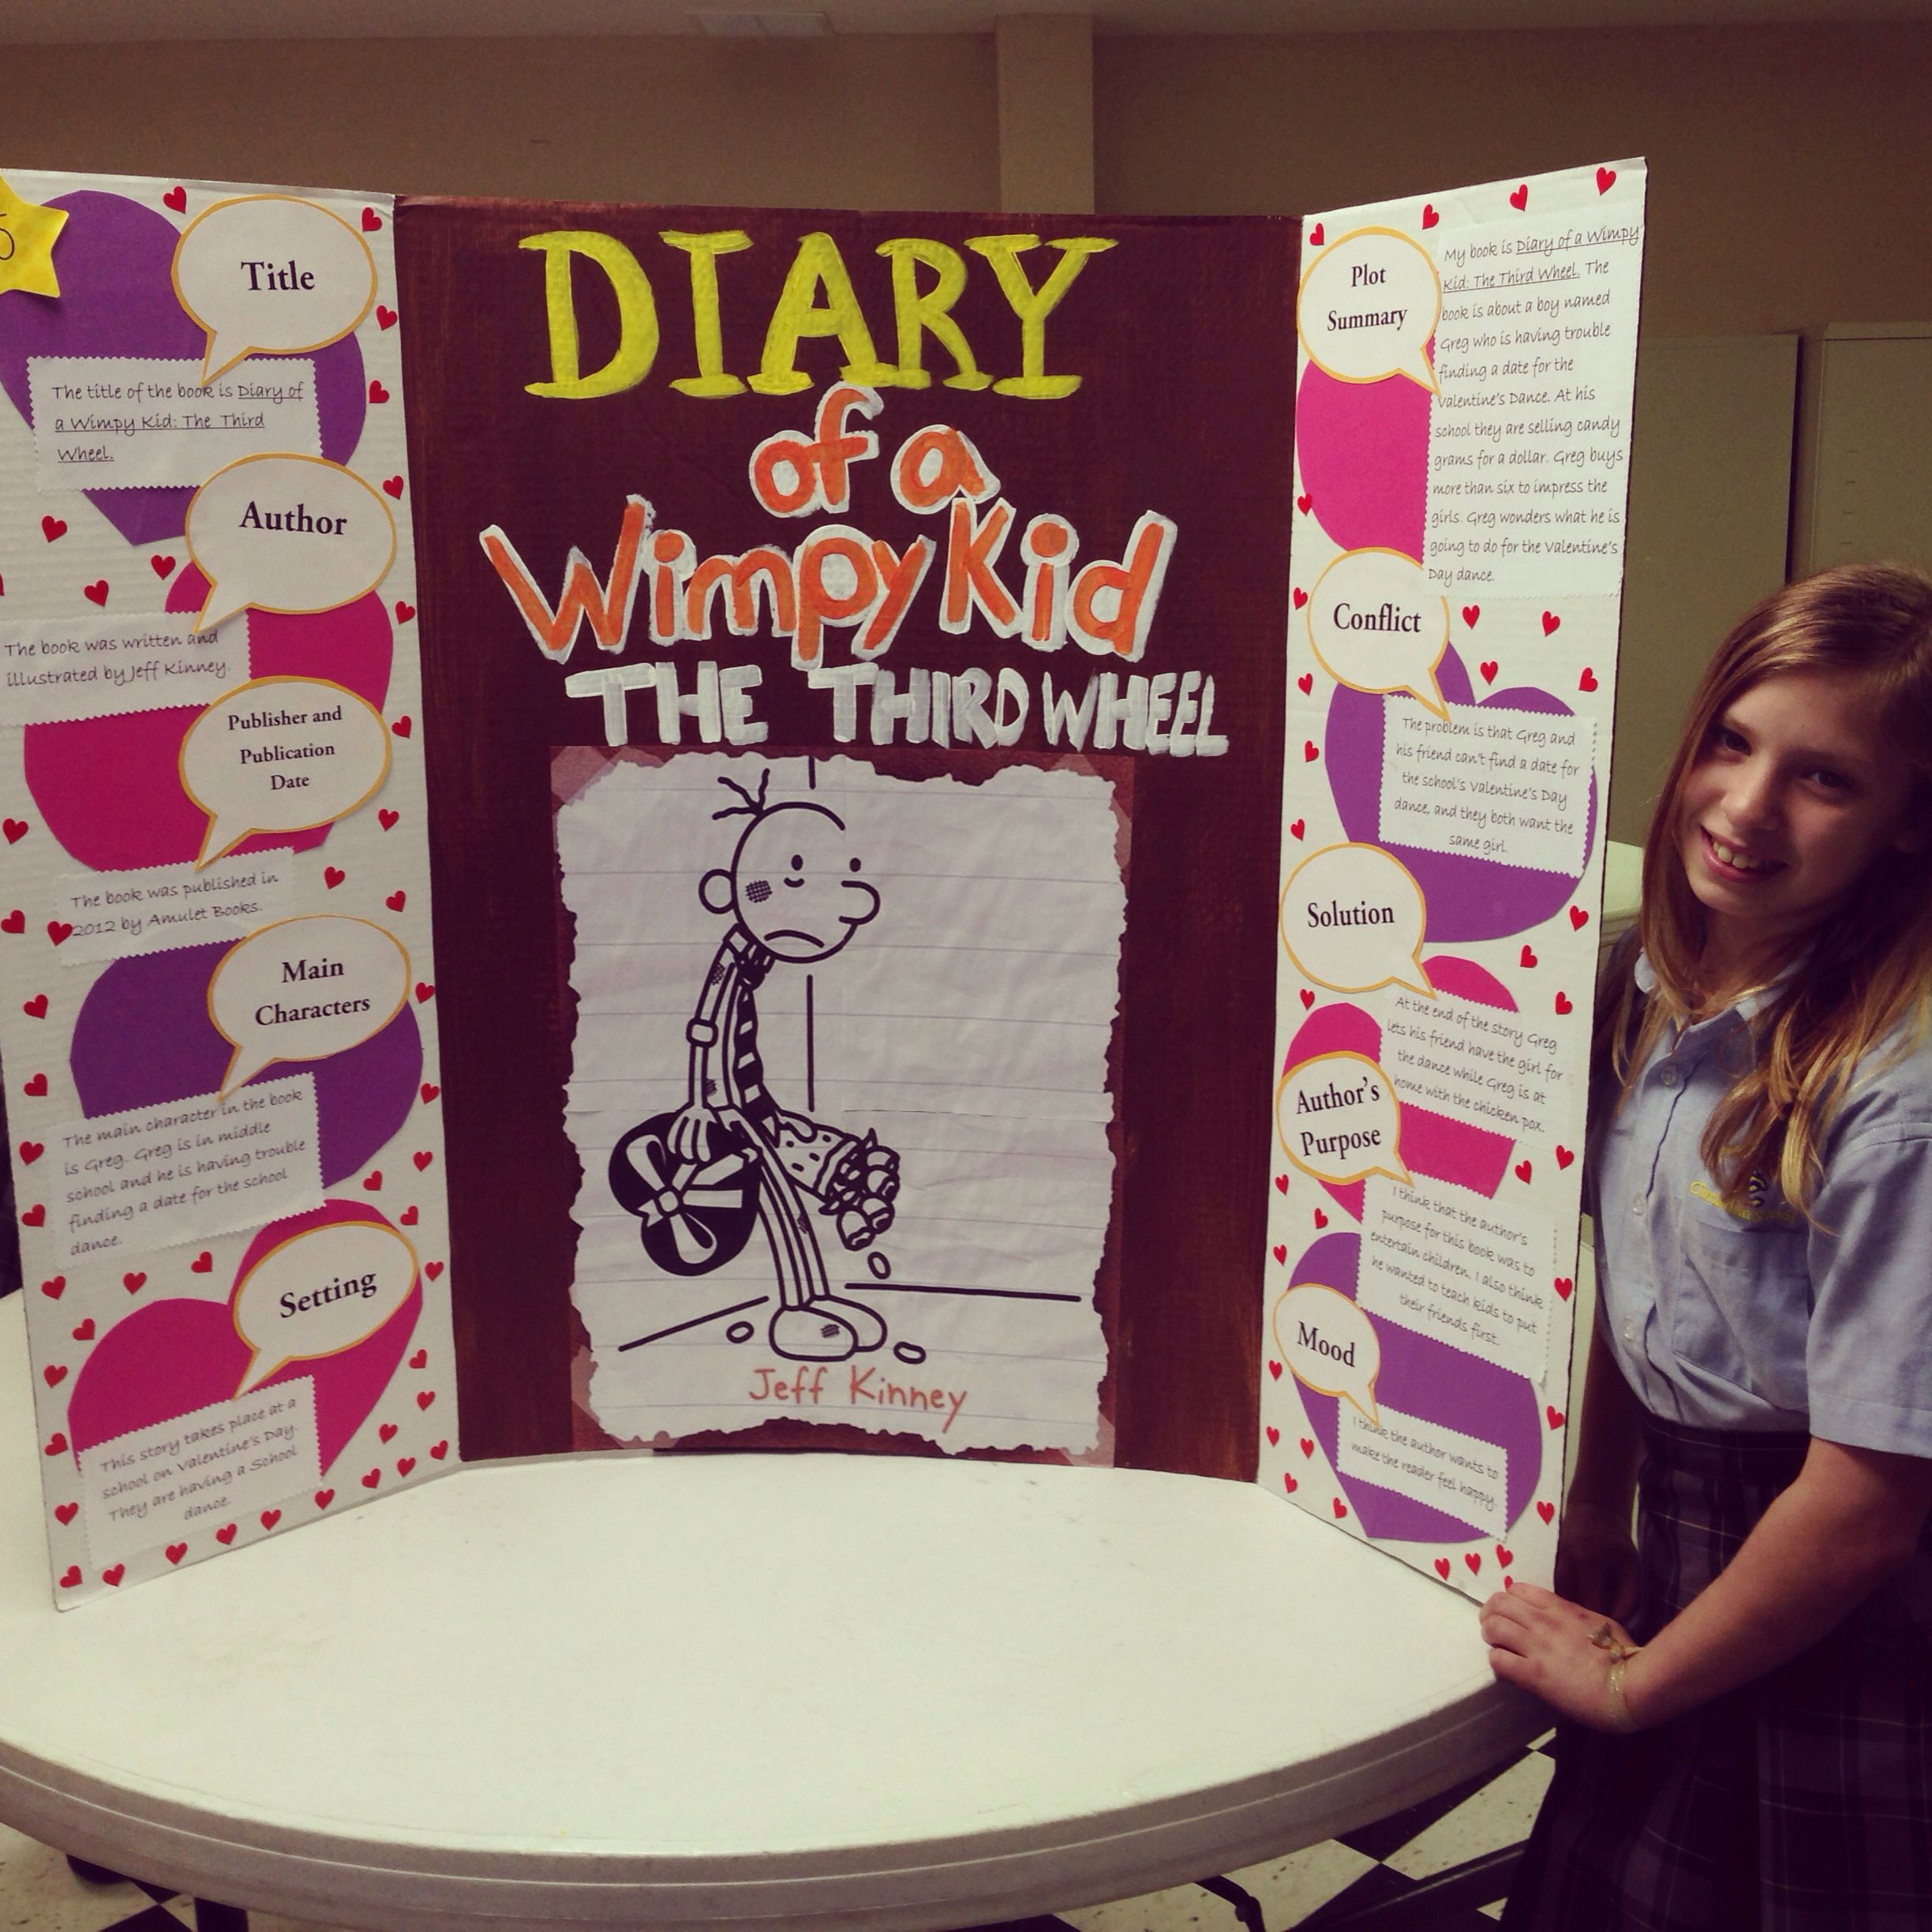 Emmas Reading Fair Project Diary Of A Wimpy Kid The Third Wheel